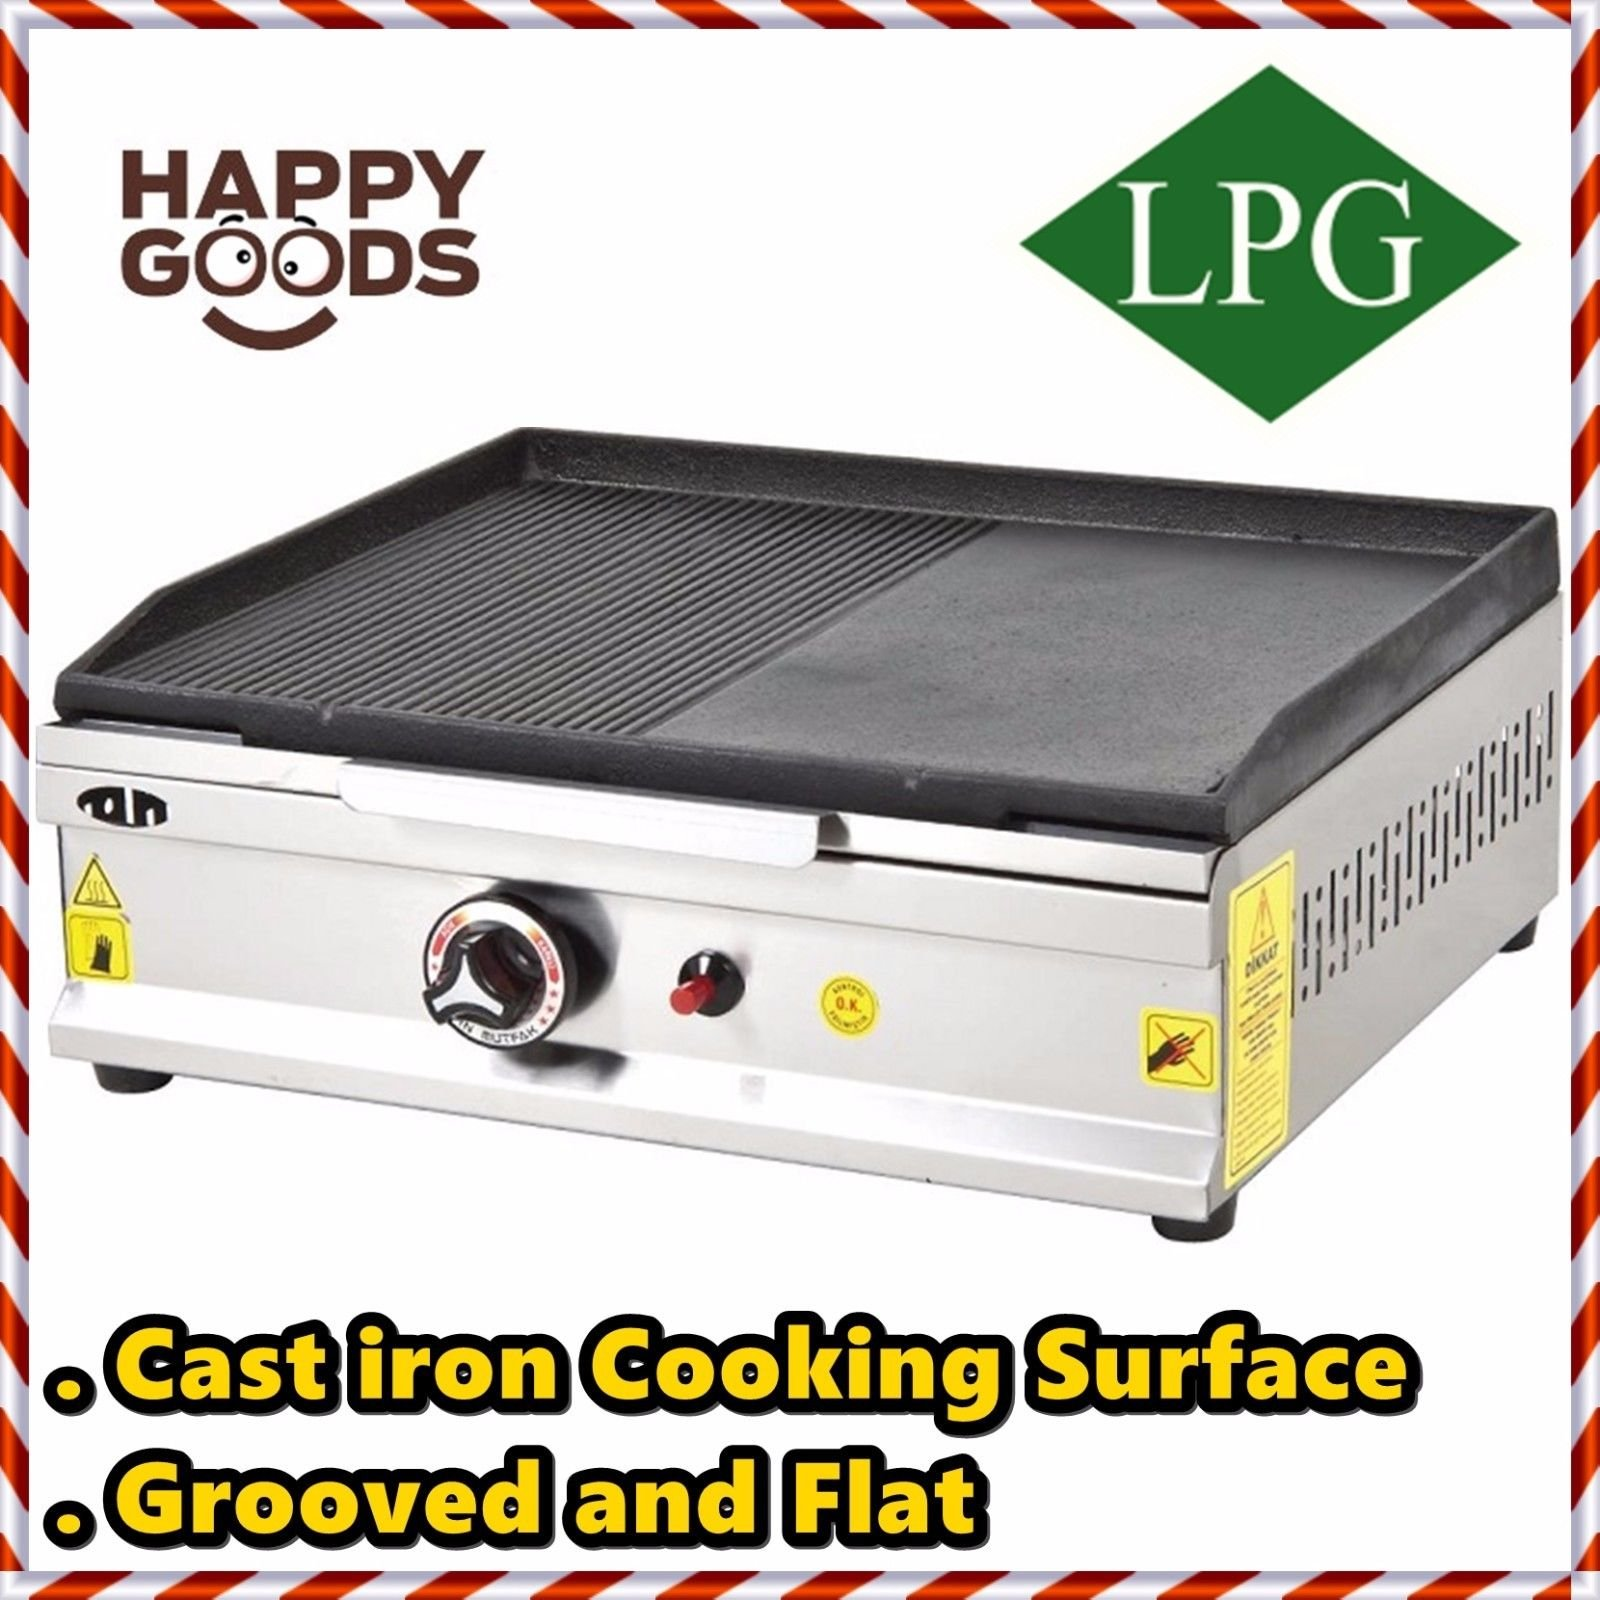 20 '' ( 50 cm ) PROPANE GAS Commercial Kitchen Equipment GROOVED AND FLAT CAST IRON SURFACE Countertop Flat and Grooved Top Grill Restaurant Cooktop Manual Griddle